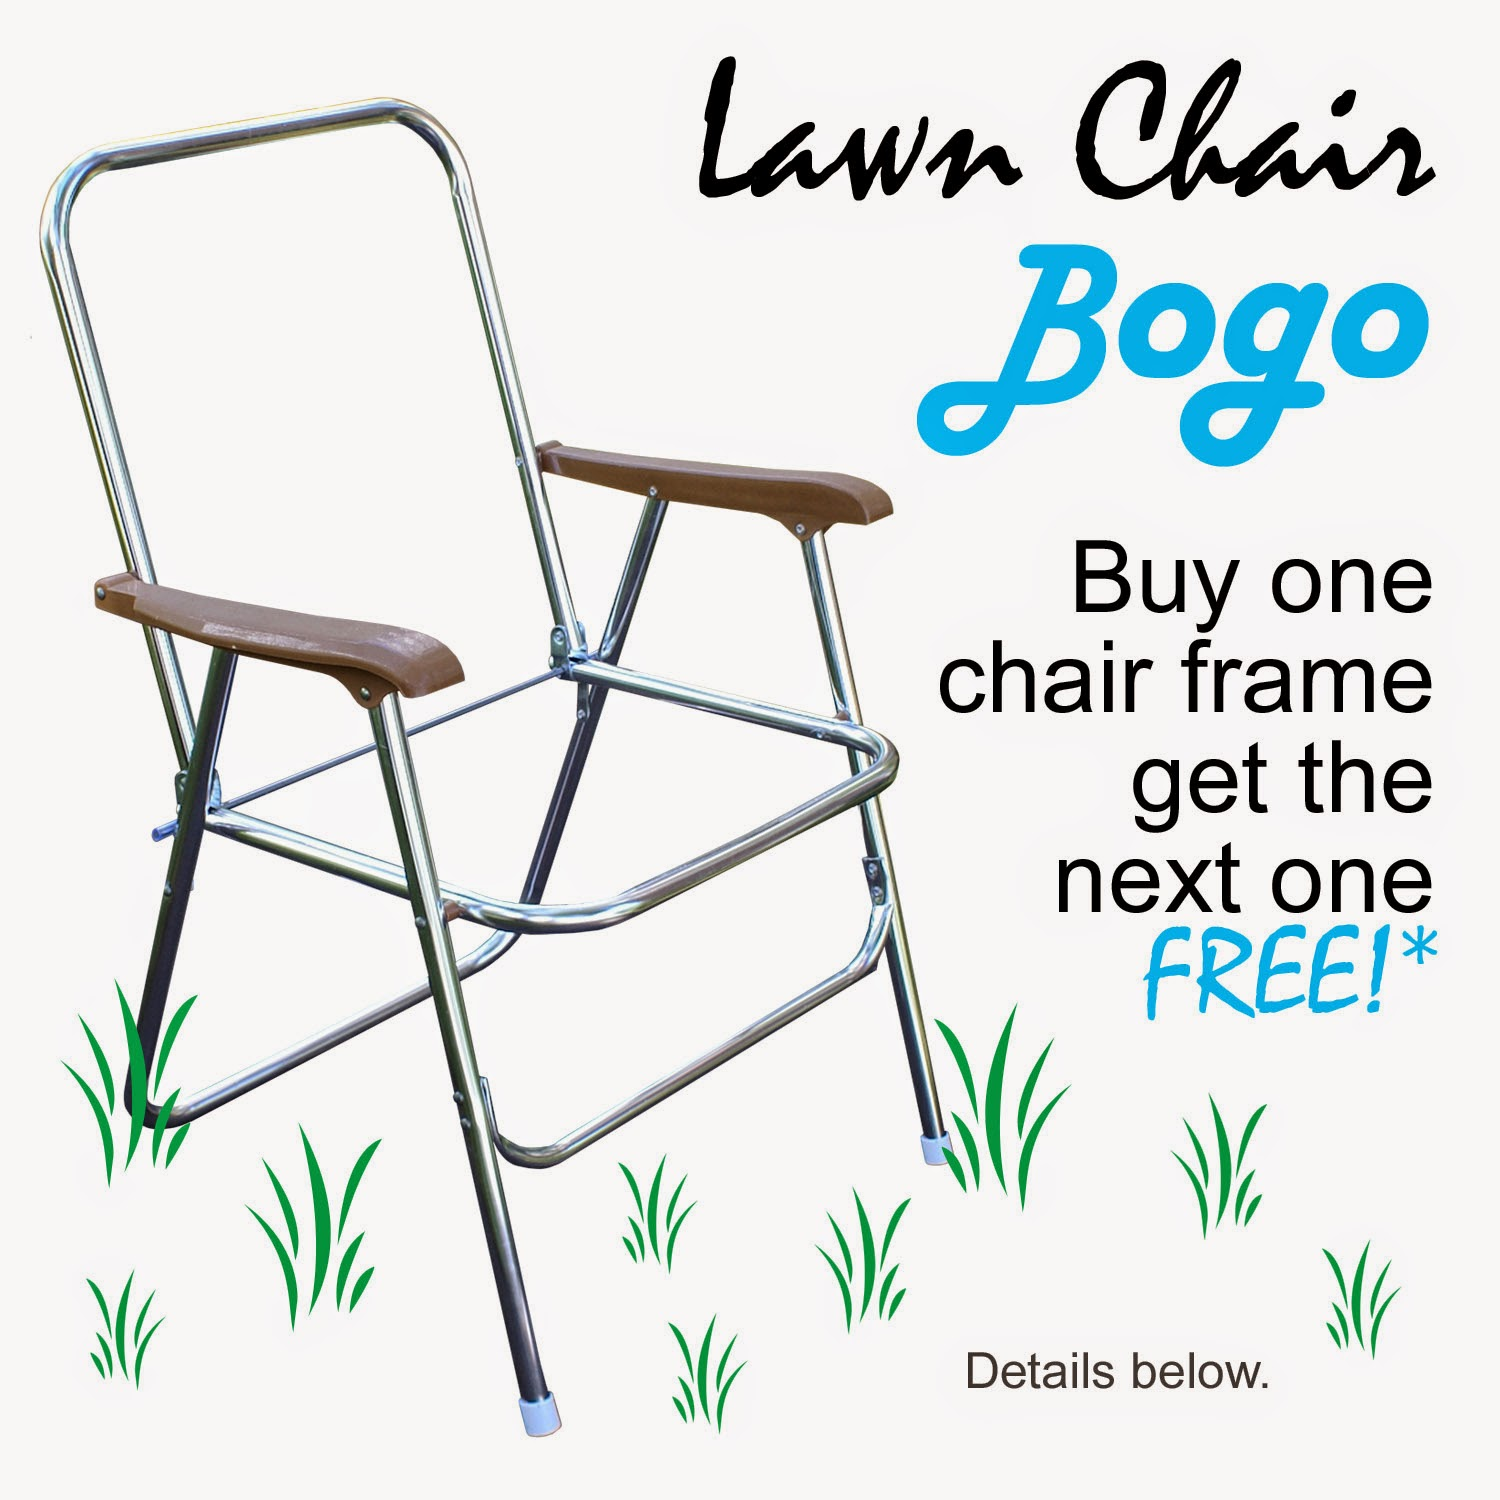 Lawn Chair BOGO Expires Soon | Pepperell Braiding Company